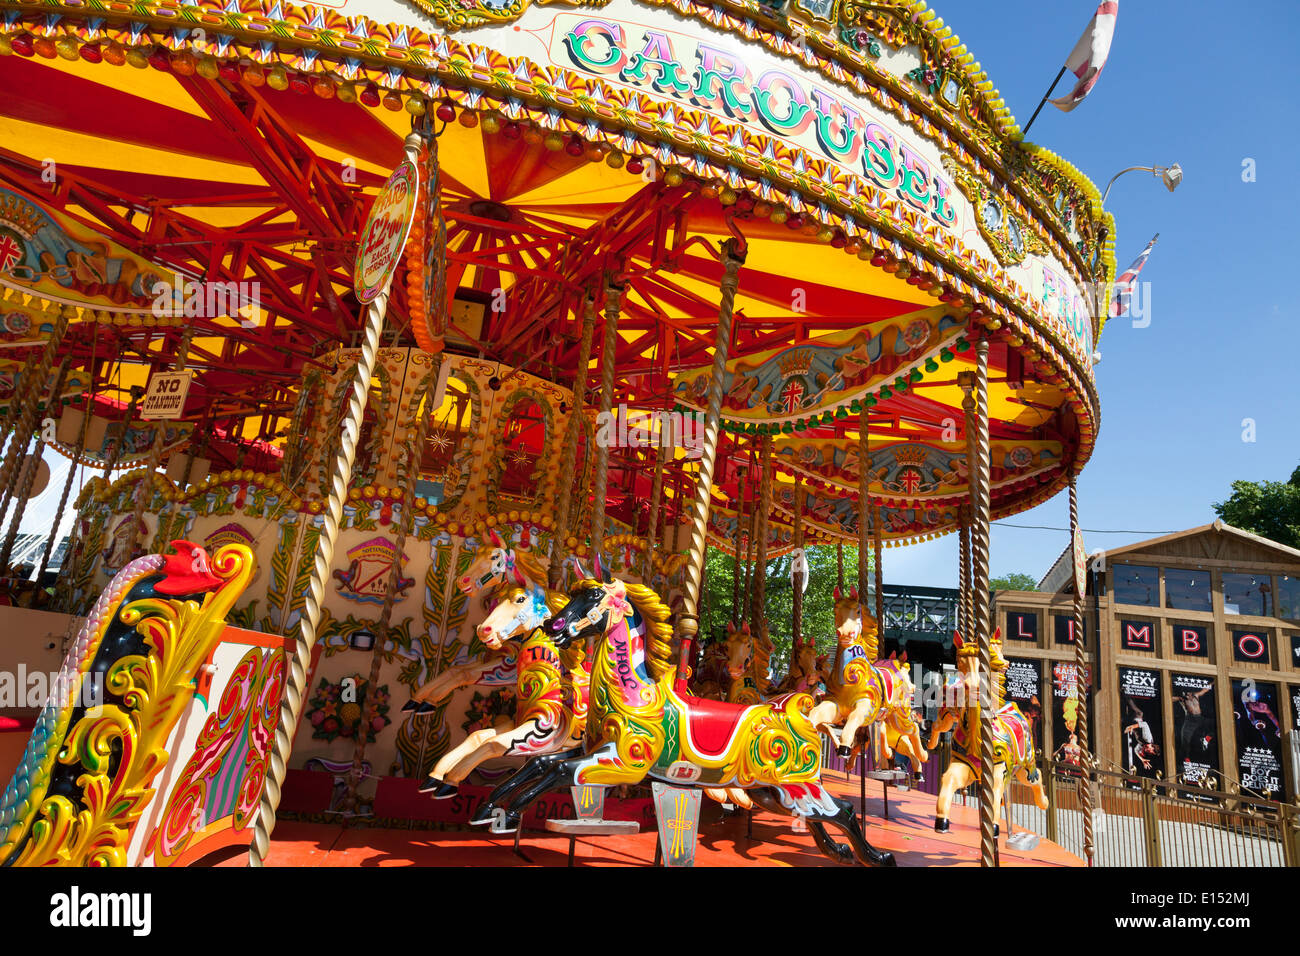 Unoccupied traditional carousel fair ground ride. - Stock Image